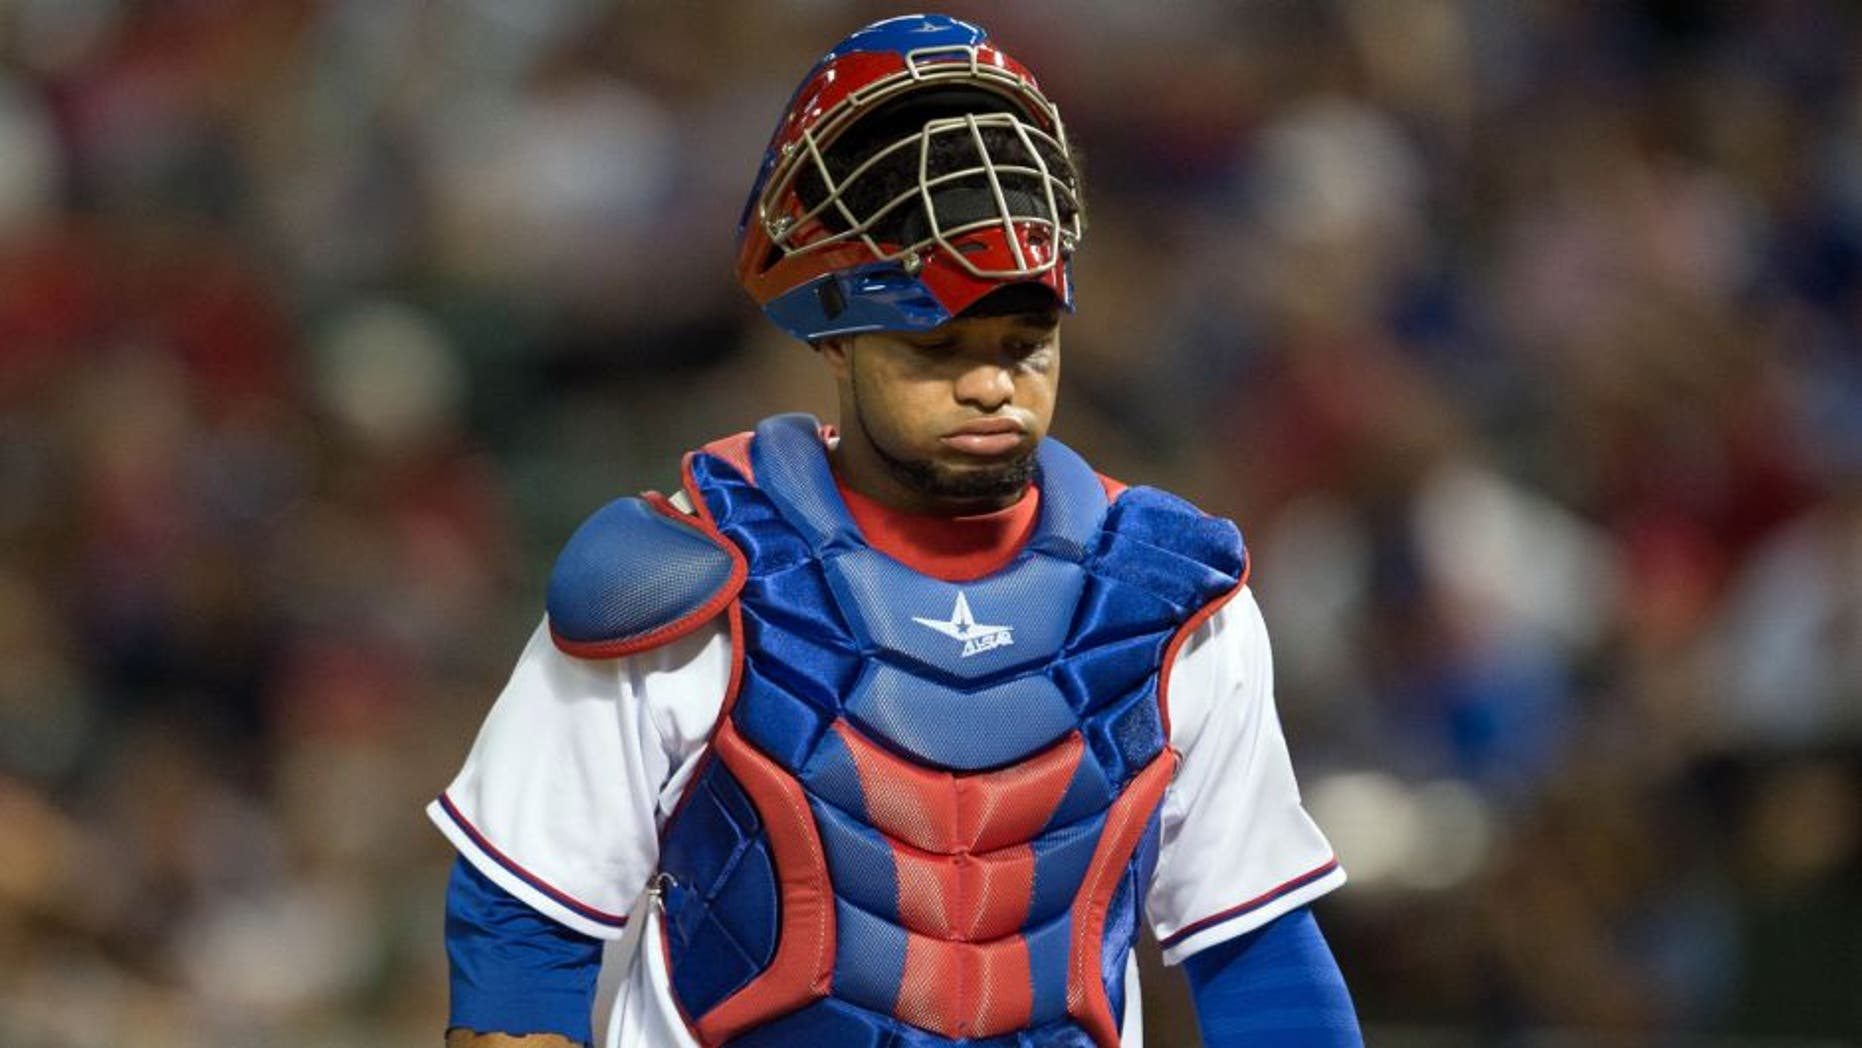 Sep 10, 2014; Arlington, TX, USA; Texas Rangers catcher Tomas Telis (6) reacts to an error by his team during the game against the Los Angeles Angels at Globe Life Park in Arlington. The Angels defeated the Rangers 8-1. Mandatory Credit: Jerome Miron-USA TODAY Sports